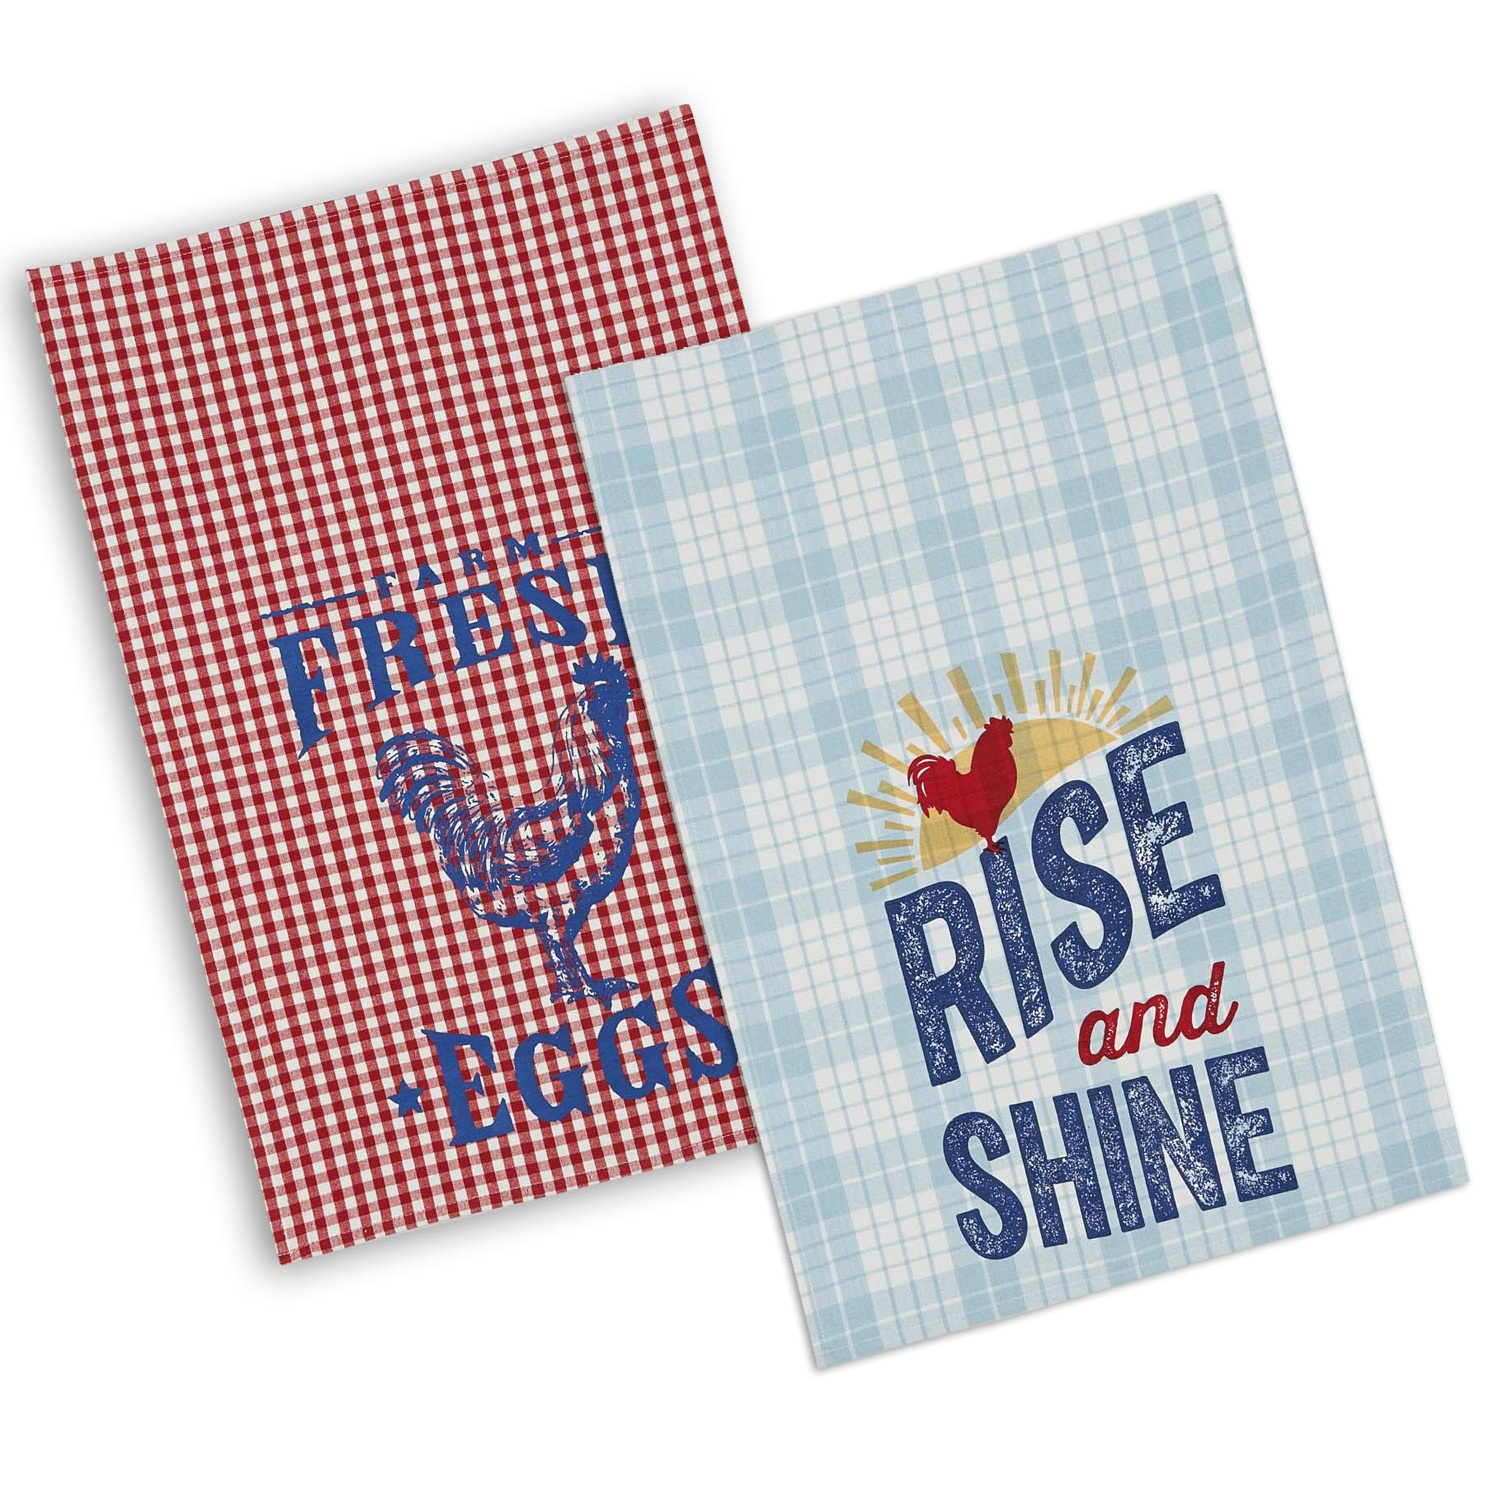 DII 100% Cotton, Machine Washable, Everyday Kitchen Basic Printed Assorted Rooster's Dishtowel, 18x28